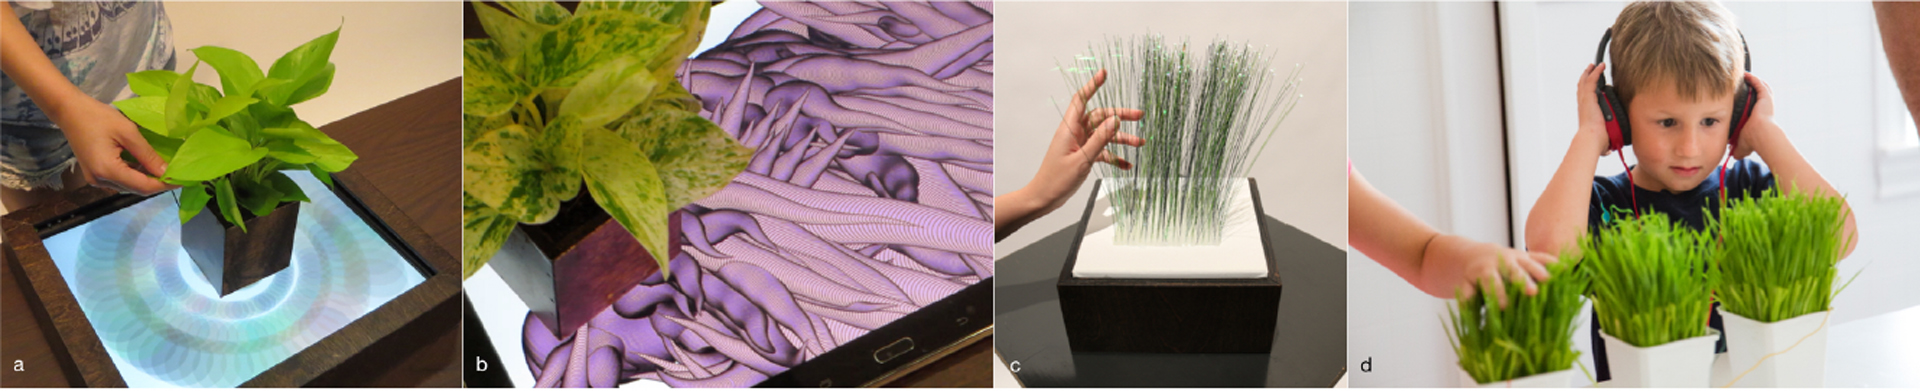 ©ISEA2016: 22nd International Symposium on Electronic Art, Annie Sungkajun, Tiffany Sanchez, Jinkyo Suh, and Jinsil Hwaryoung Seo, Touchology: Exploration of Empathetic Touch Interaction with Plants for Well-being